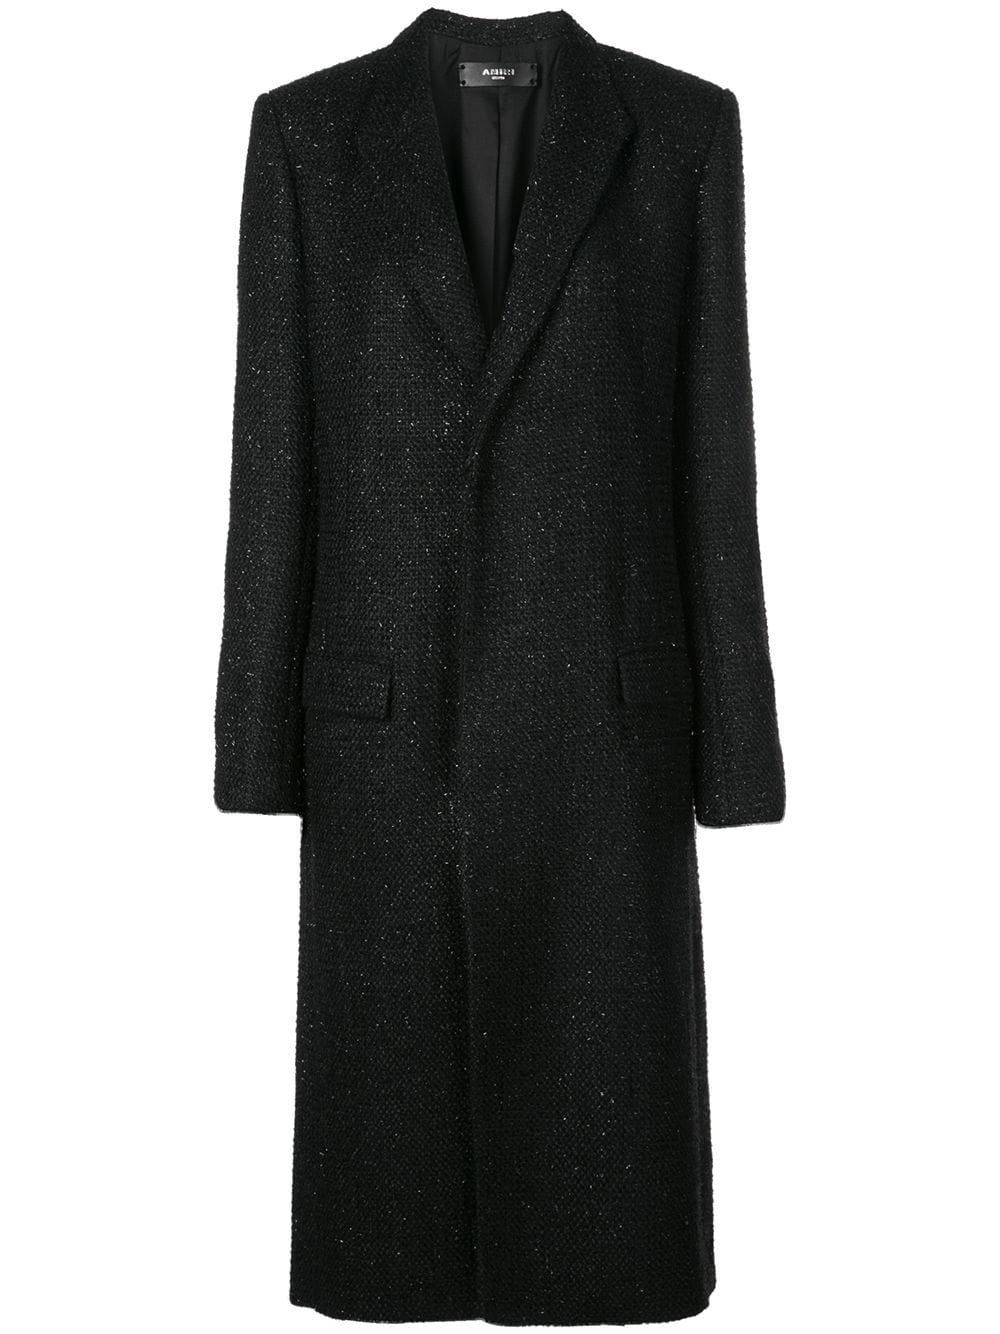 Amiri BLACK POLYESTER COAT